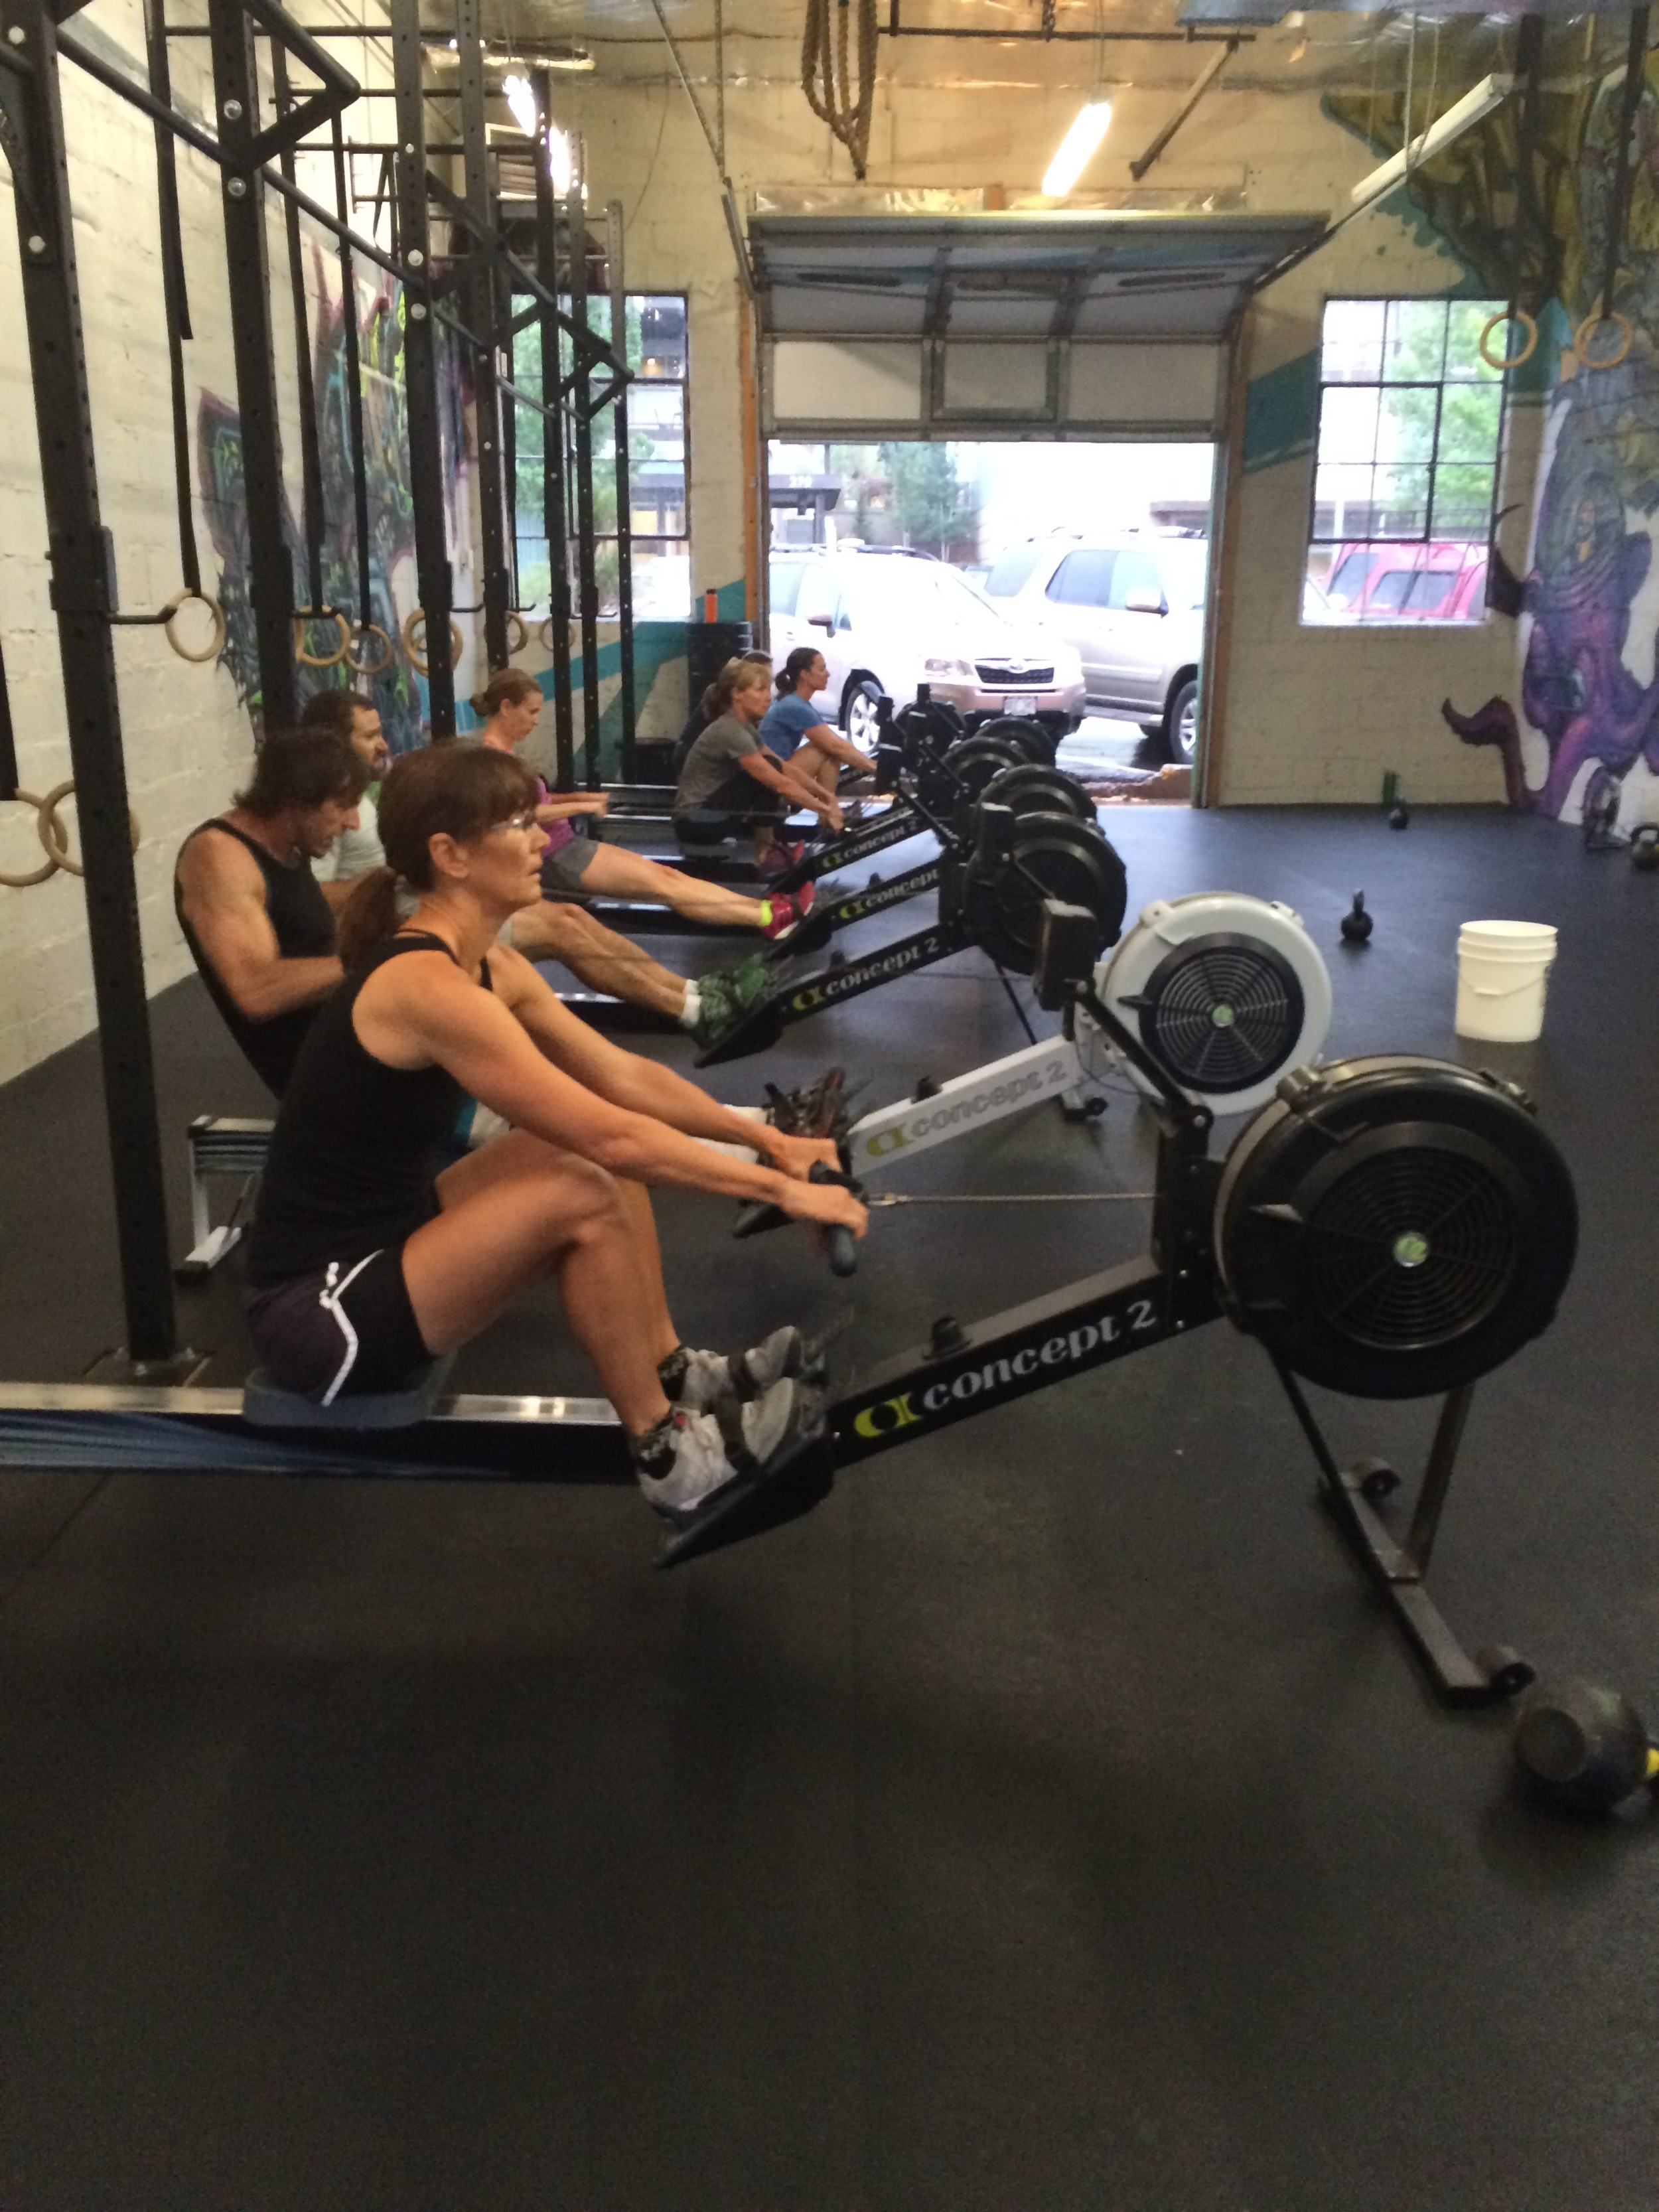 The Concept 2 rowers got a workout yesterday.